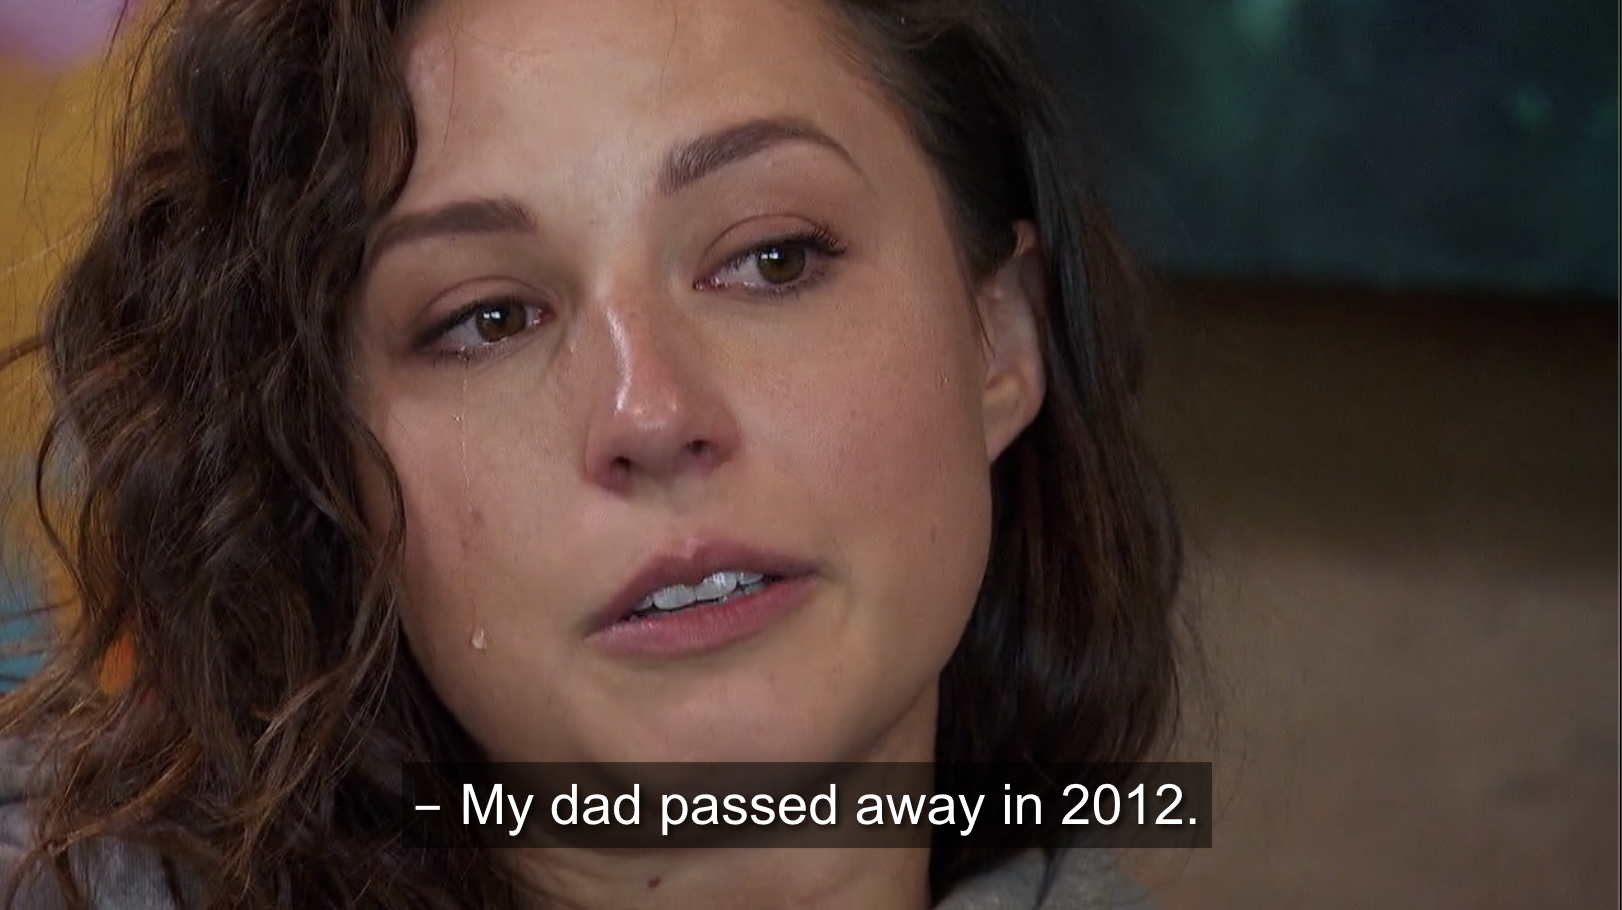 Katie talking to Sarah about her deceased father